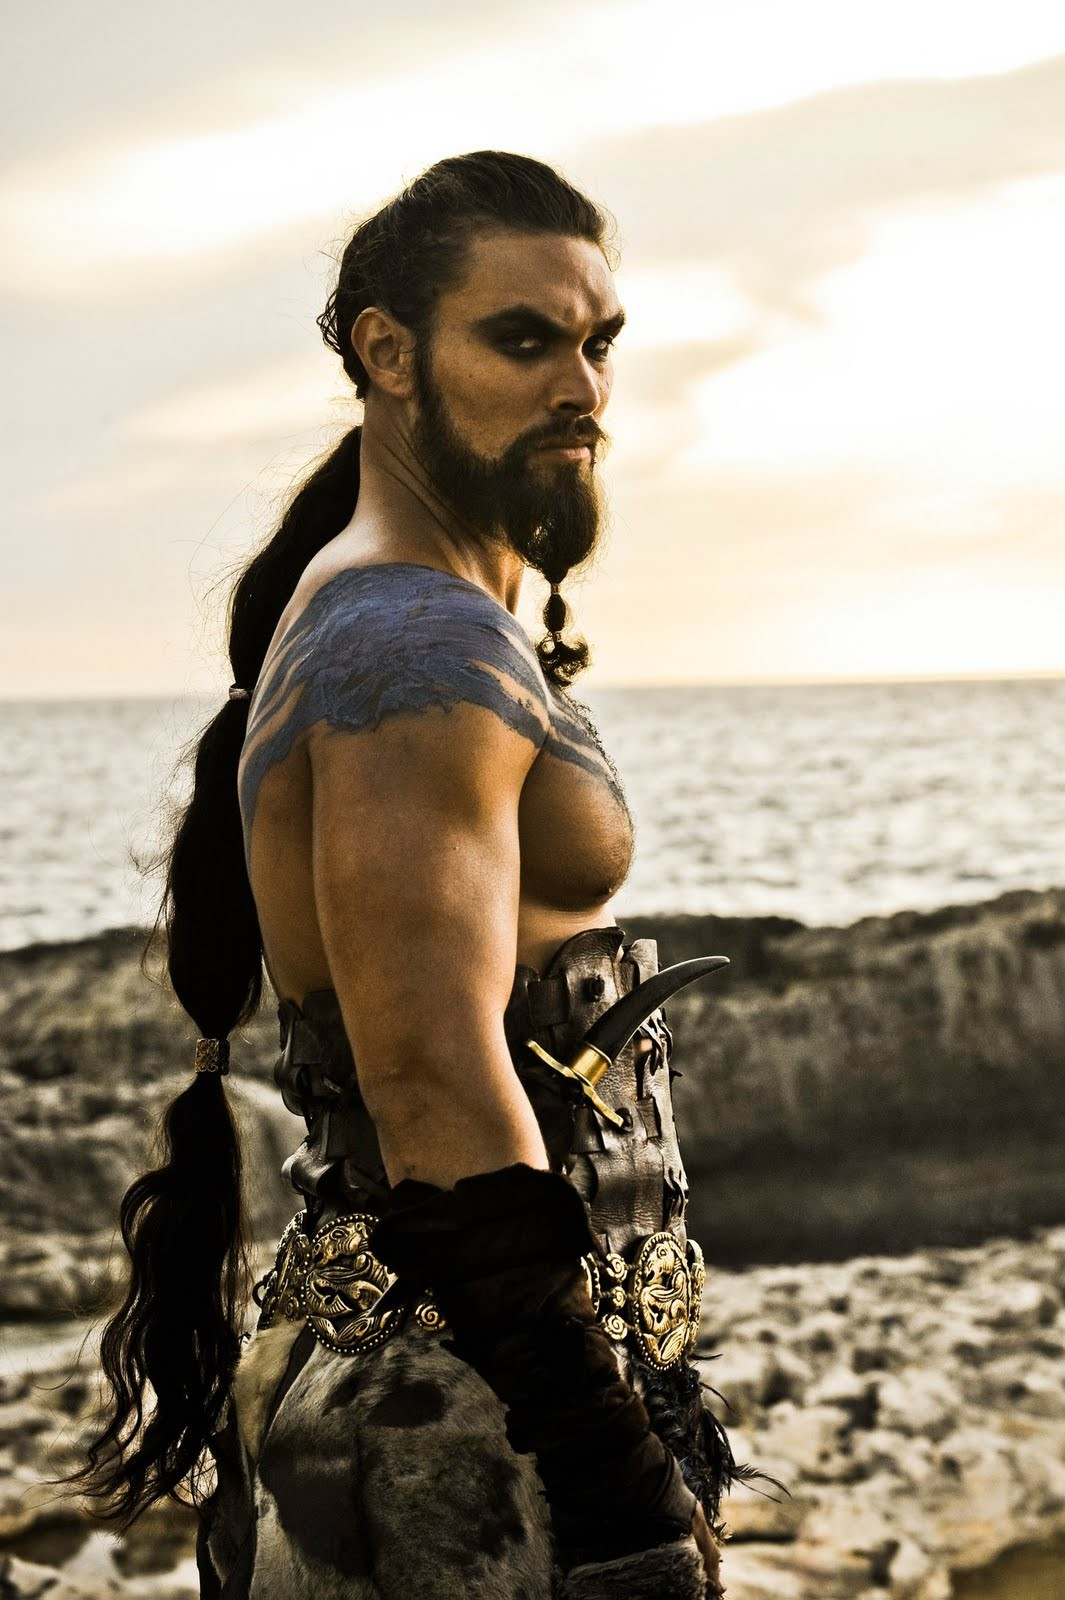 http://2.bp.blogspot.com/-KHoYWGTvx8s/T6JDVpctmeI/AAAAAAAACAg/-2dEeSUklGA/s1600/khal-drogo-game-of-thrones-leader-of-the-delthracky.jpg